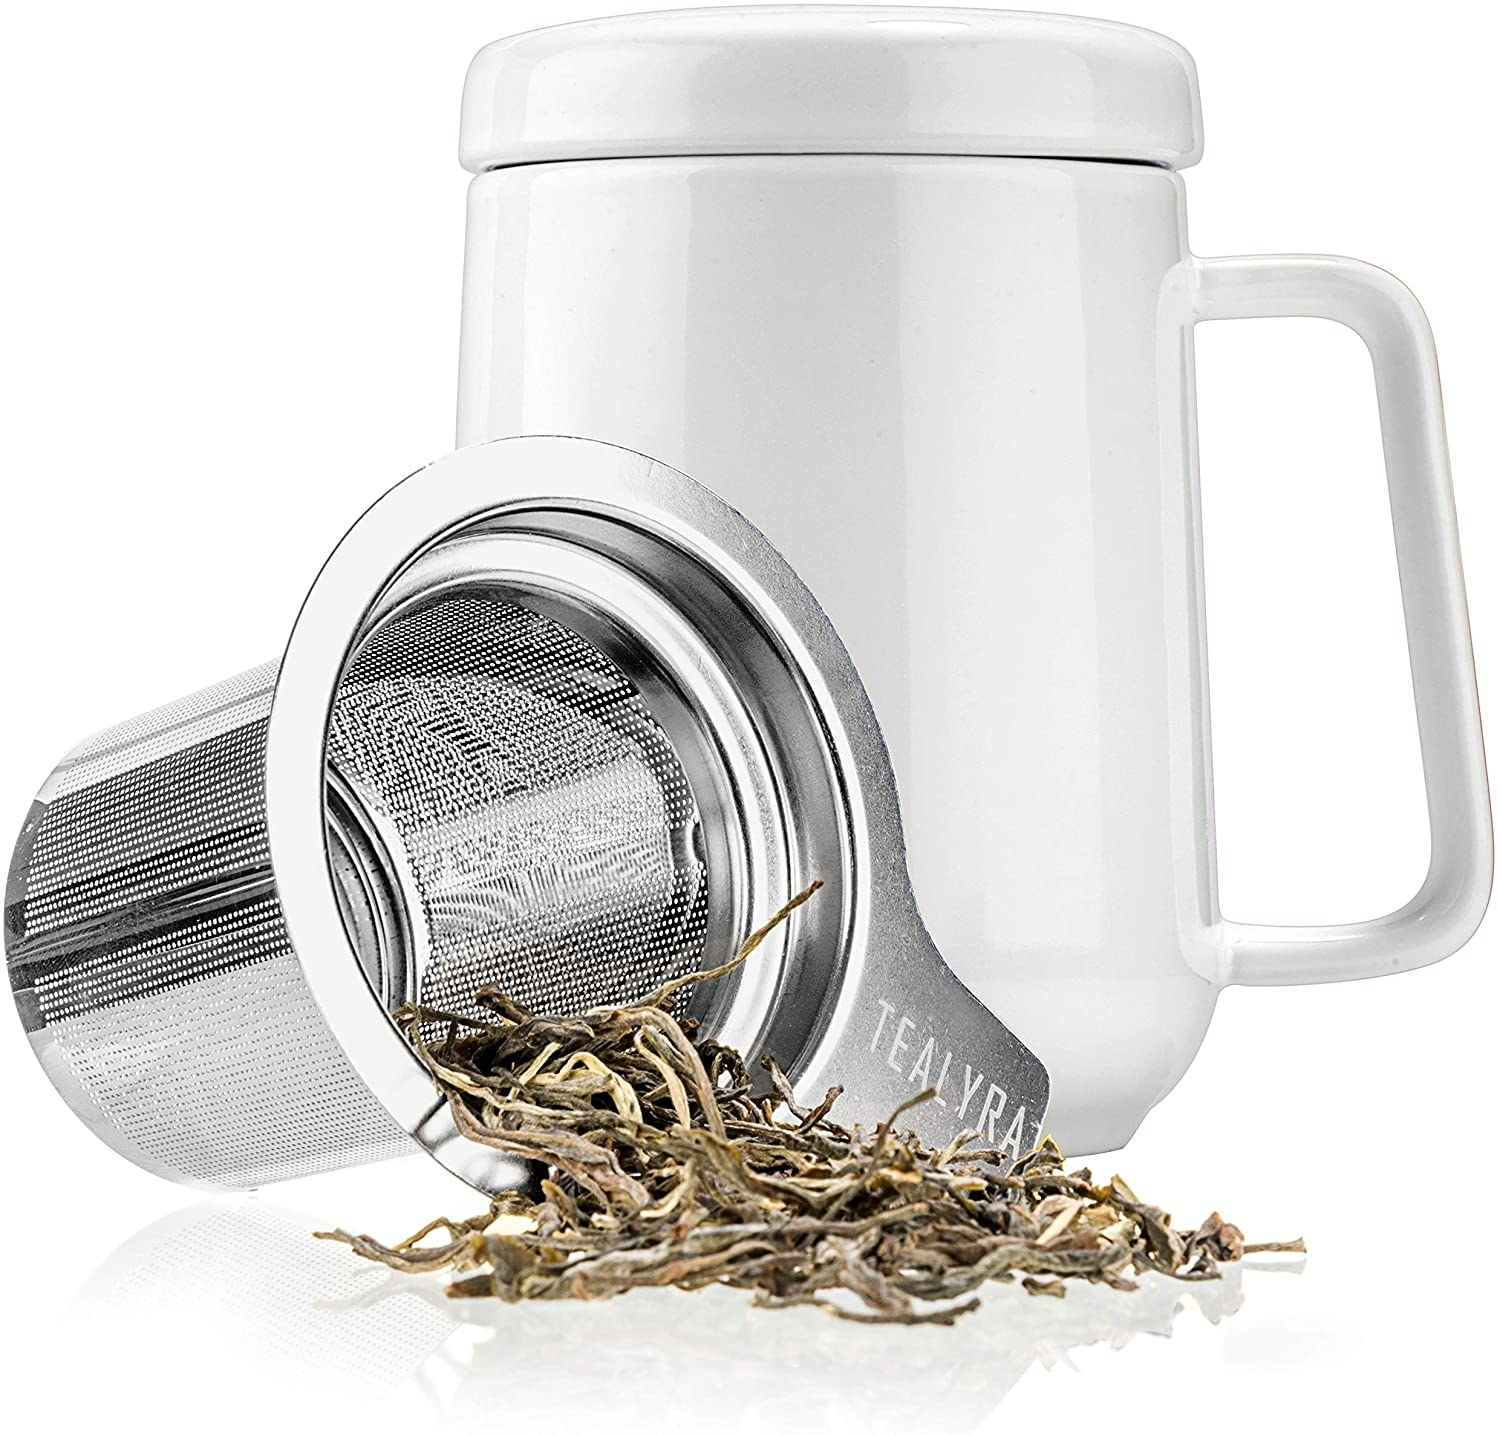 A ceramic mug with a handle and lid A steel tea infuser is sitting in front of with loose tea leaves spilling from it